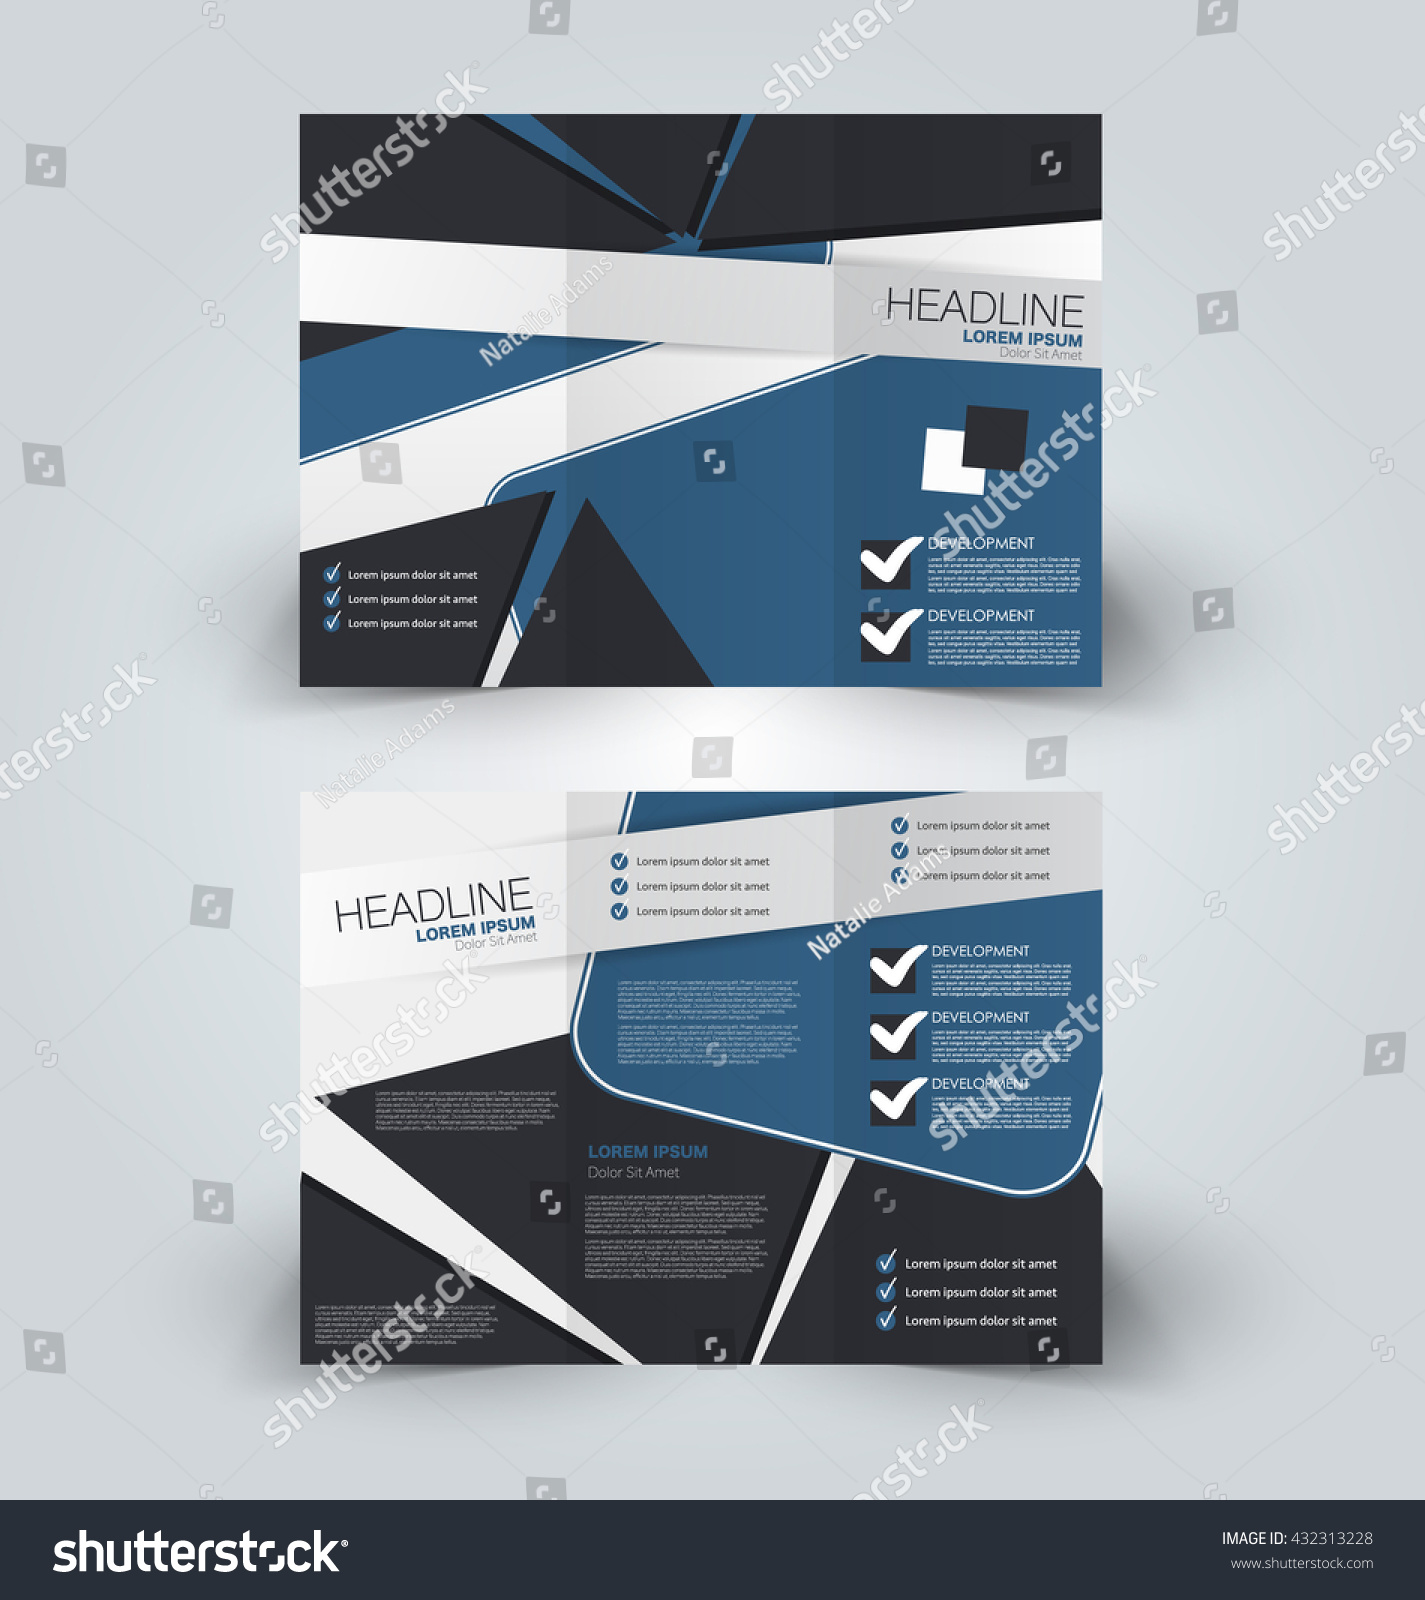 Brochure mock design template business education stock vector brochure mock up design template for business education advertisement trifold booklet editable printable magicingreecefo Image collections